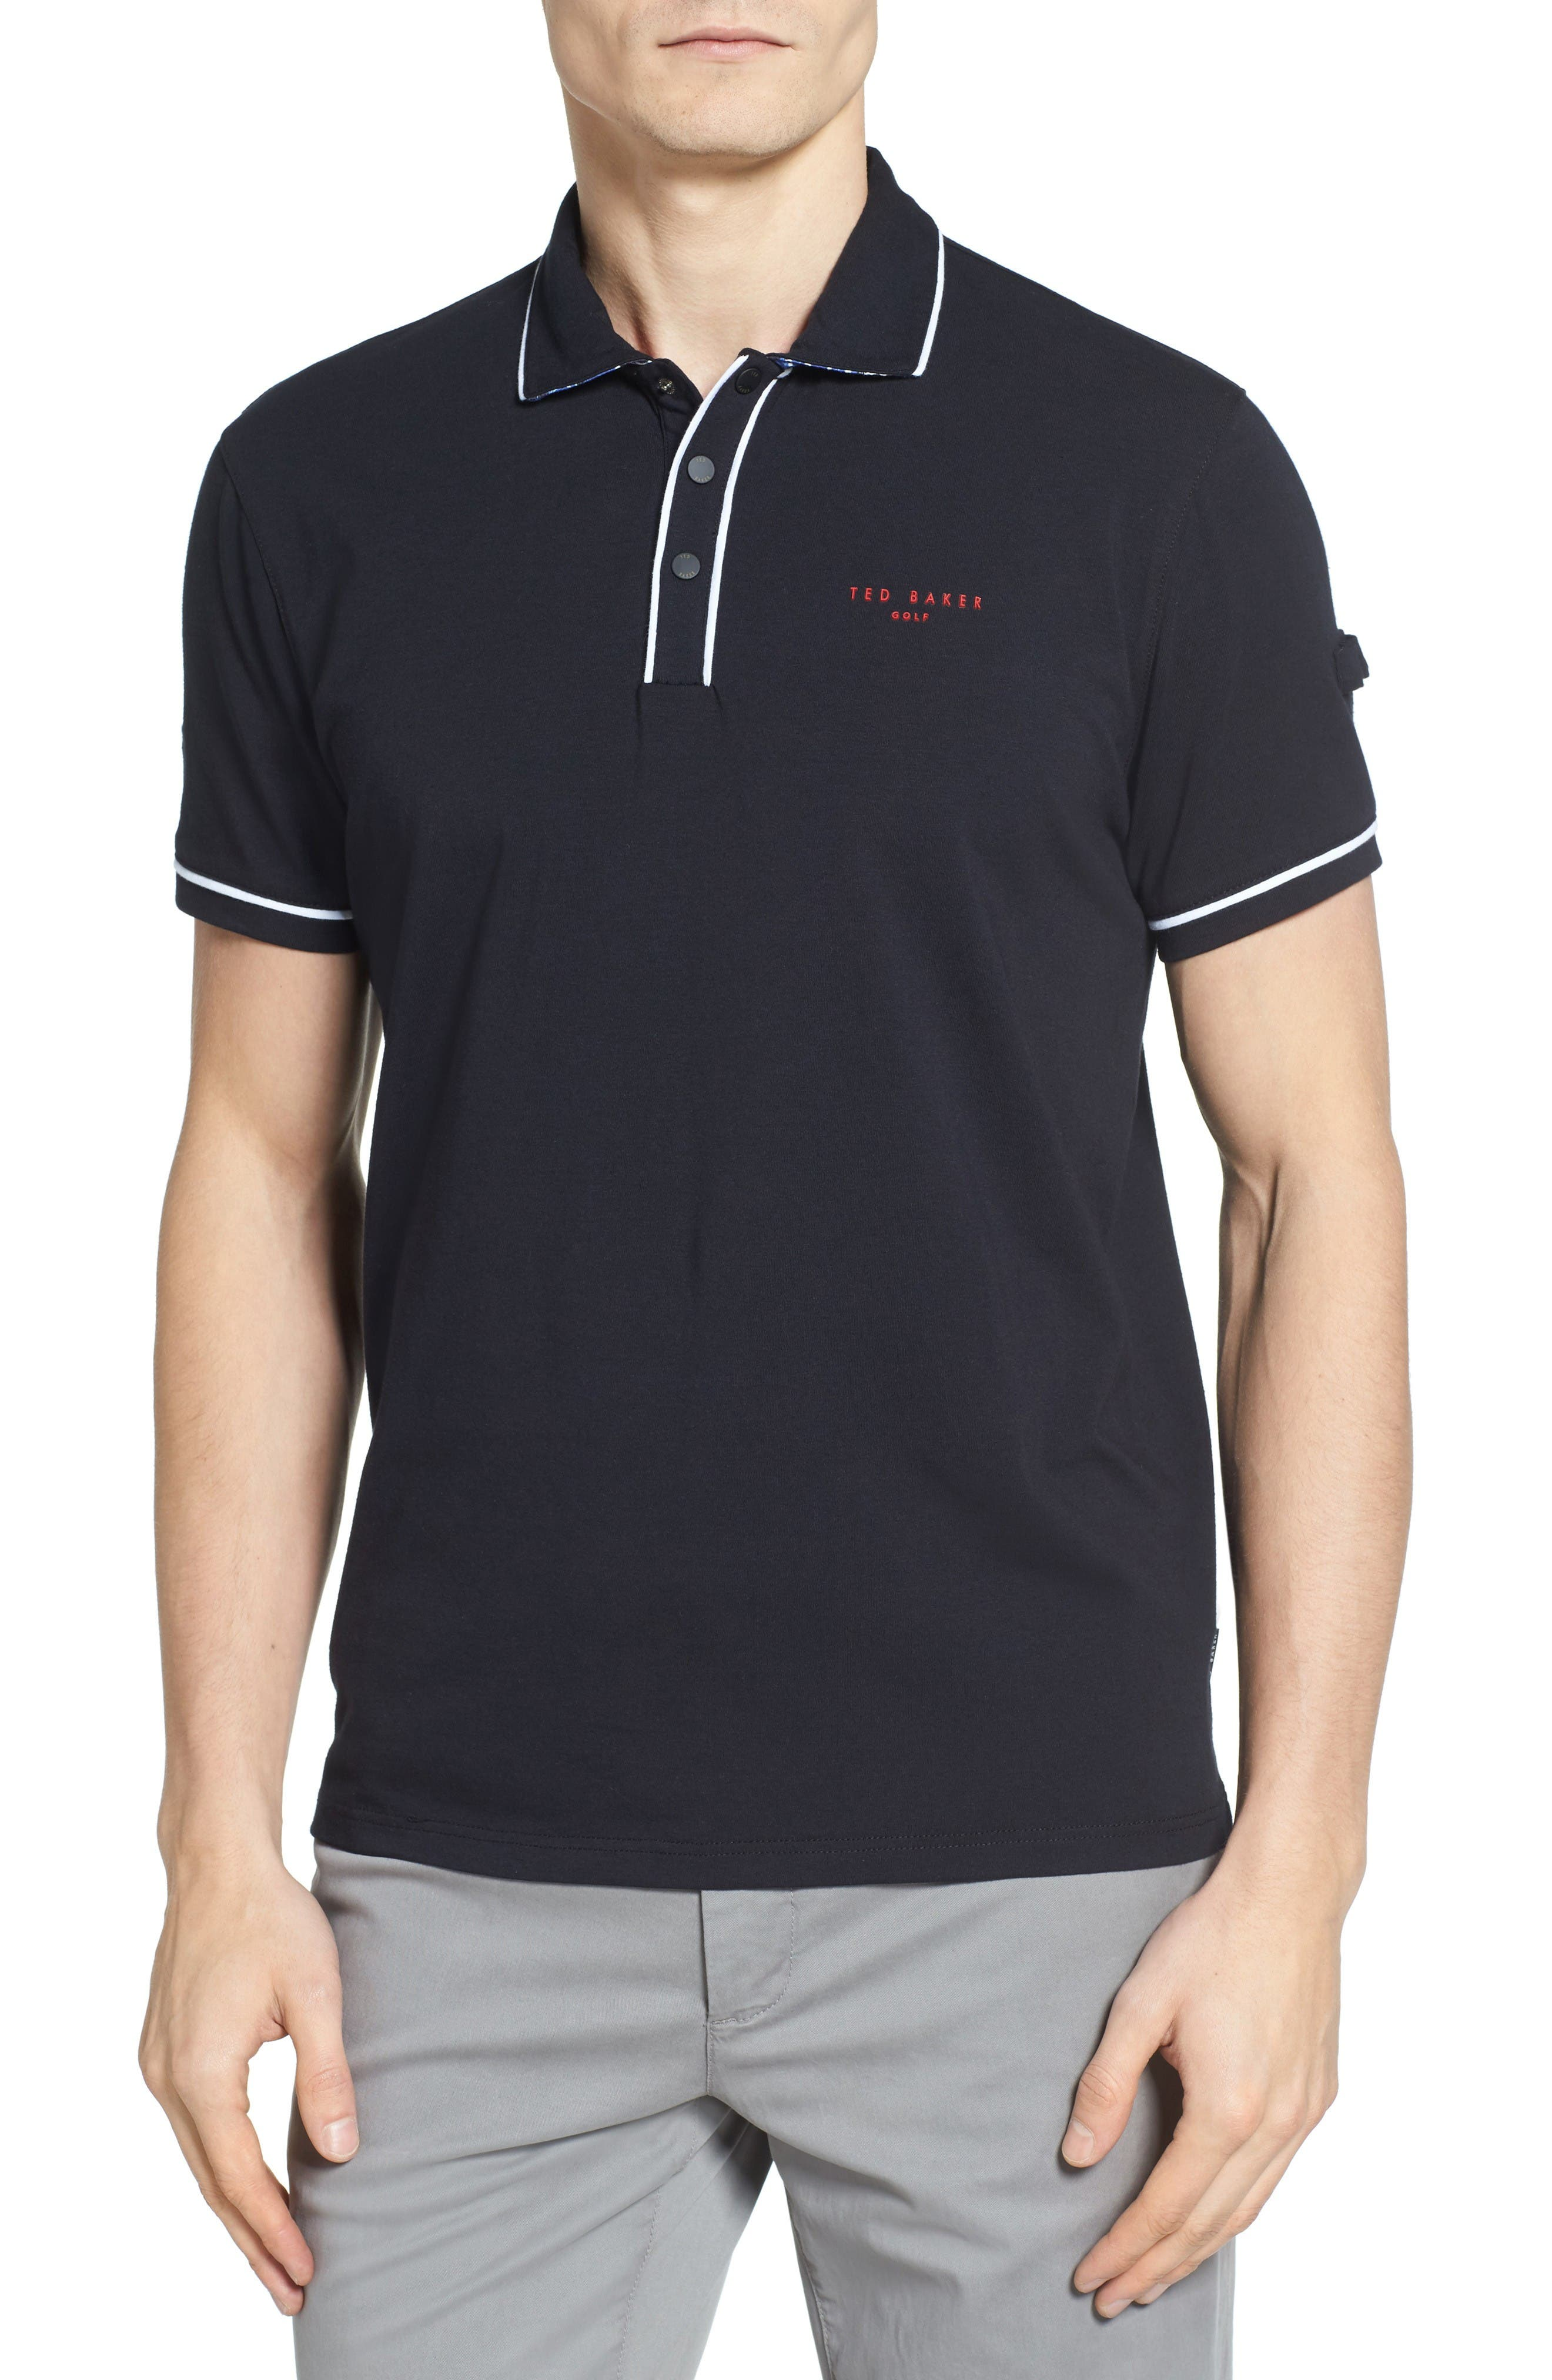 Ted Baker London Playgo Piped Trim Golf Polo